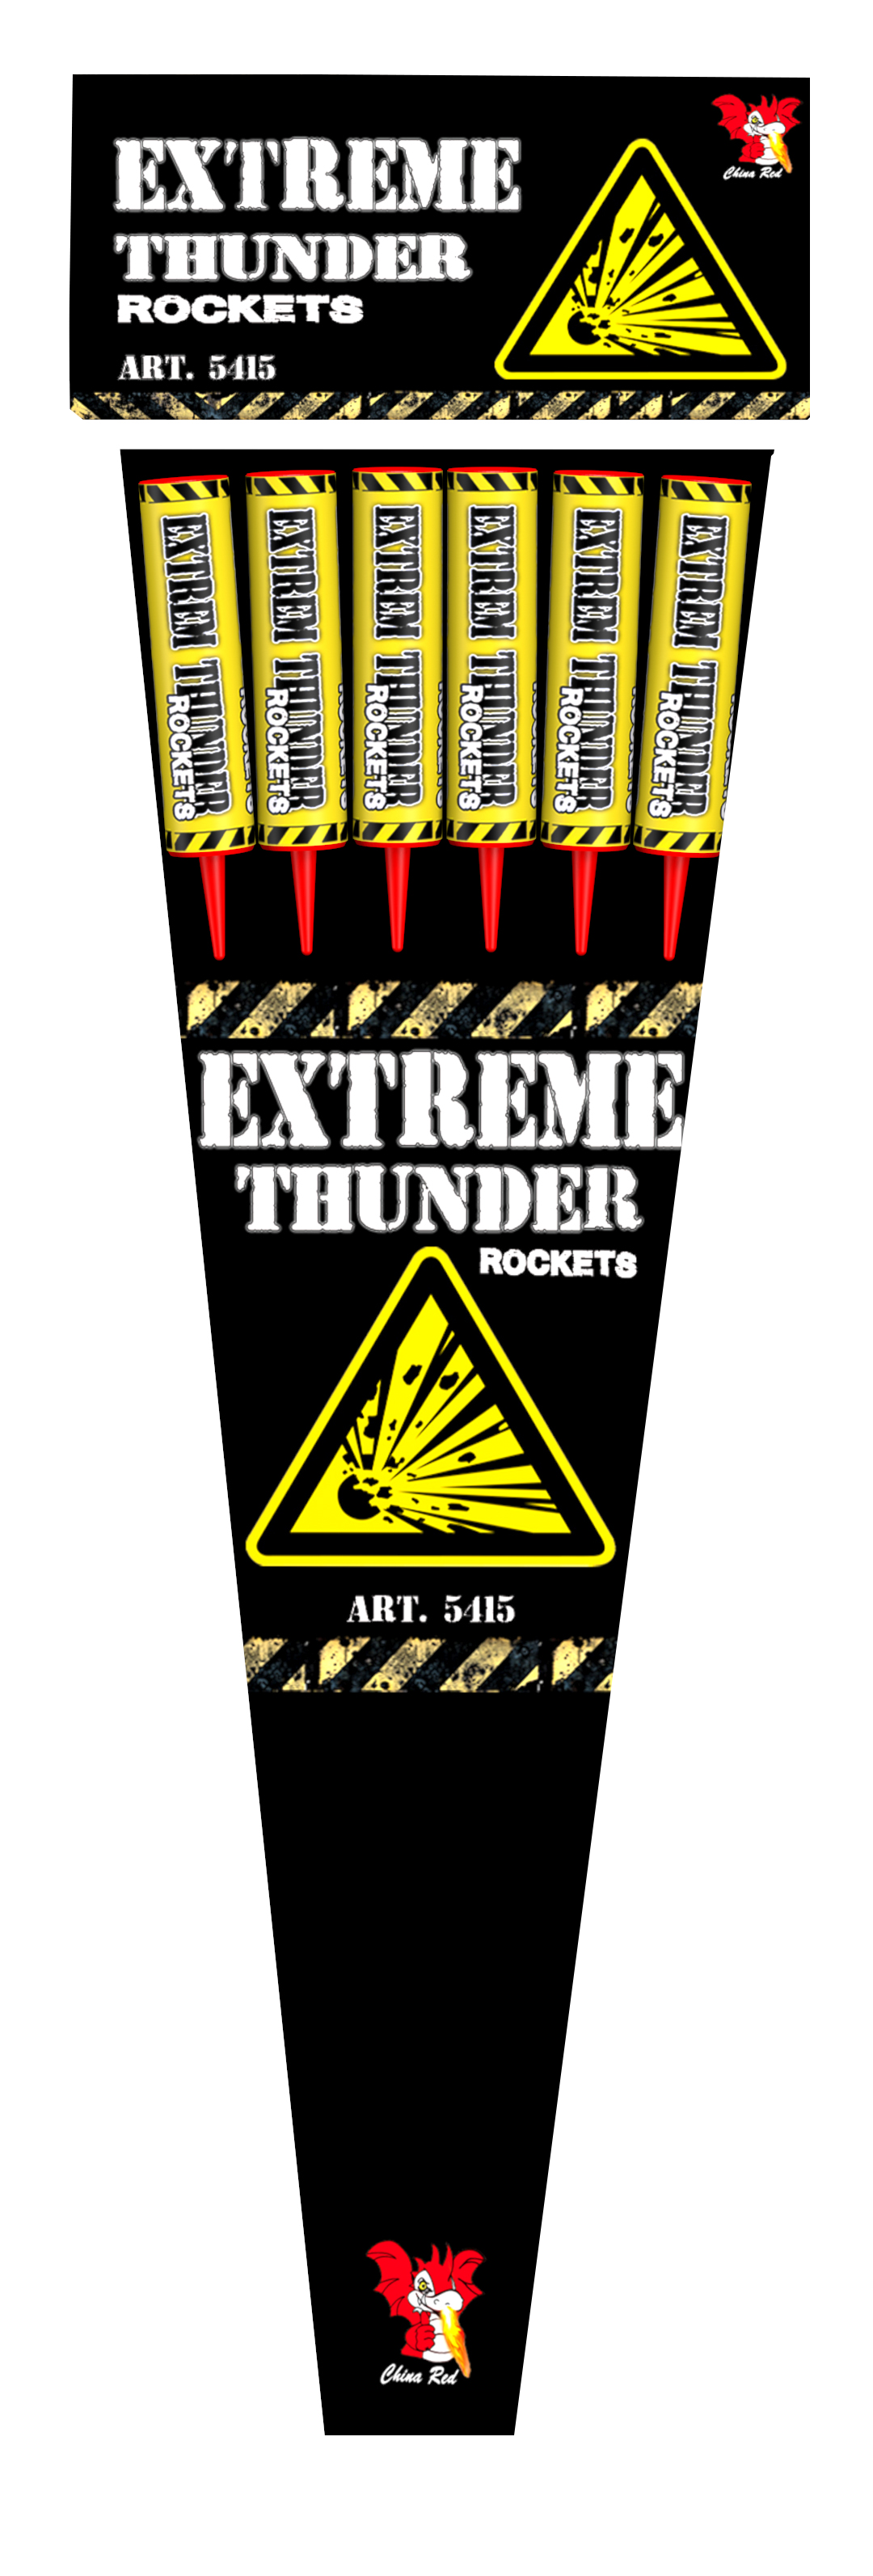 ART. 4706 EXTREME THUNDER ROCKETS